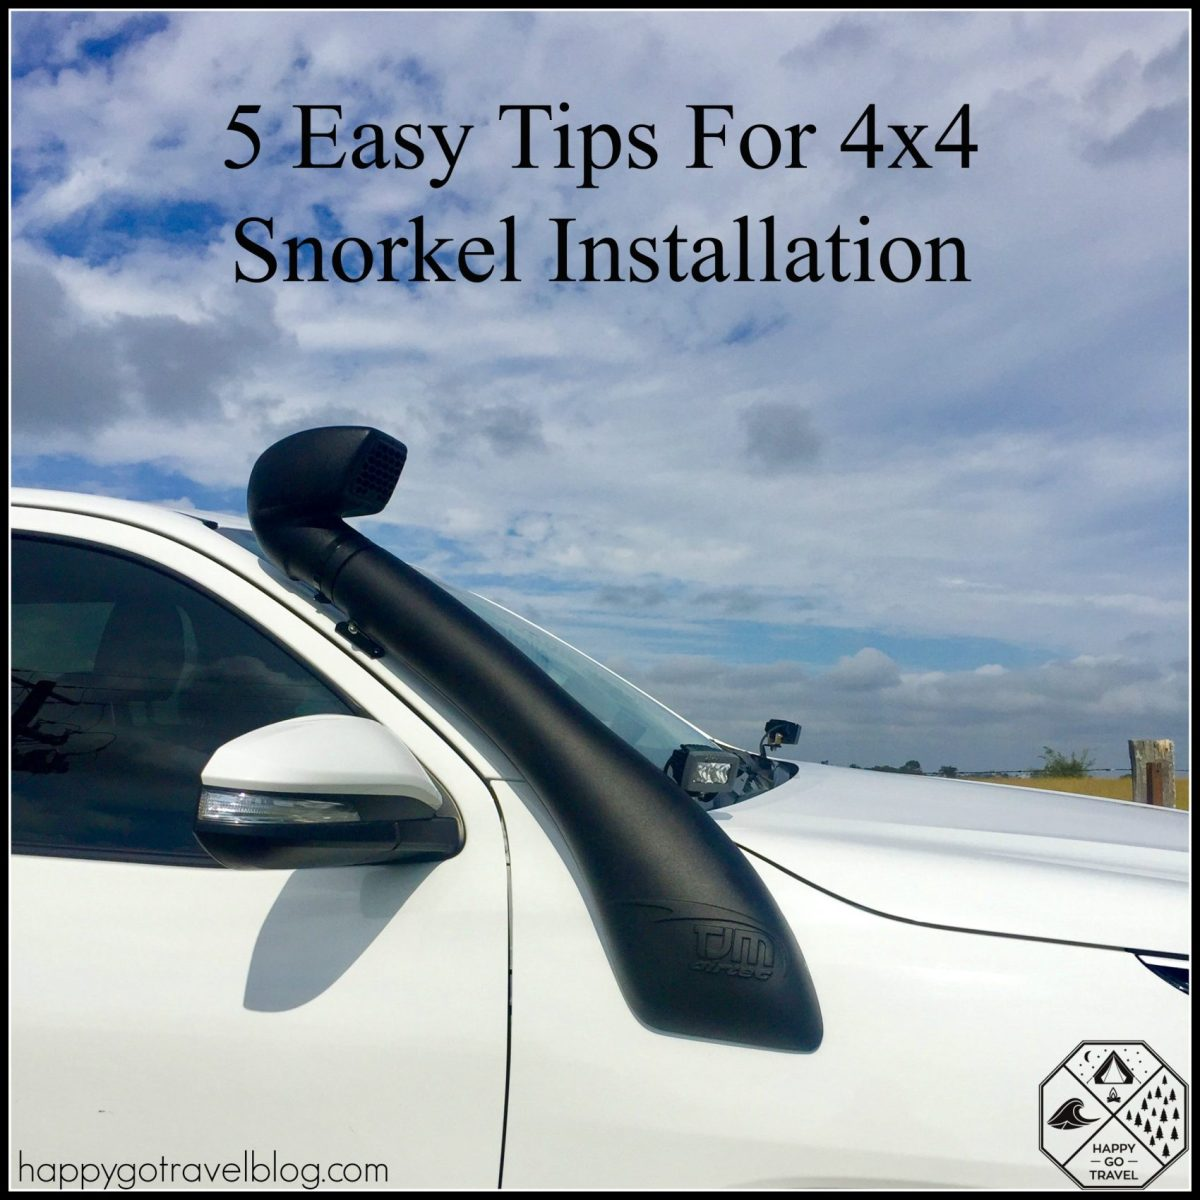 5 Easy Tips For 4x4 Snorkel Installation